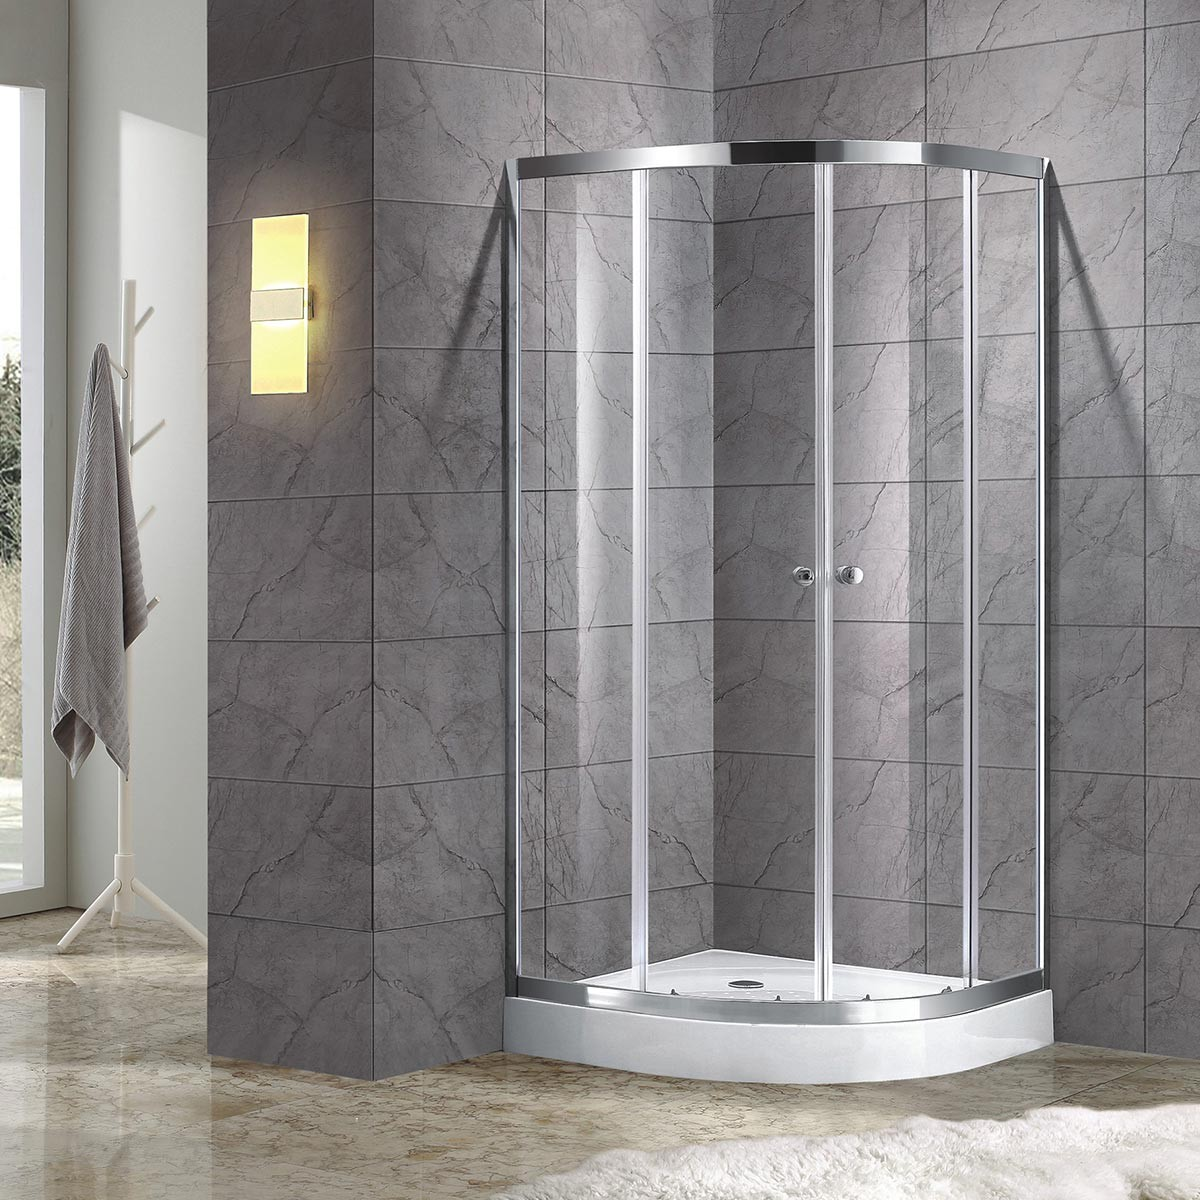 39 x 39 x 75 In. Shower Enclosure (DK-D101-100)